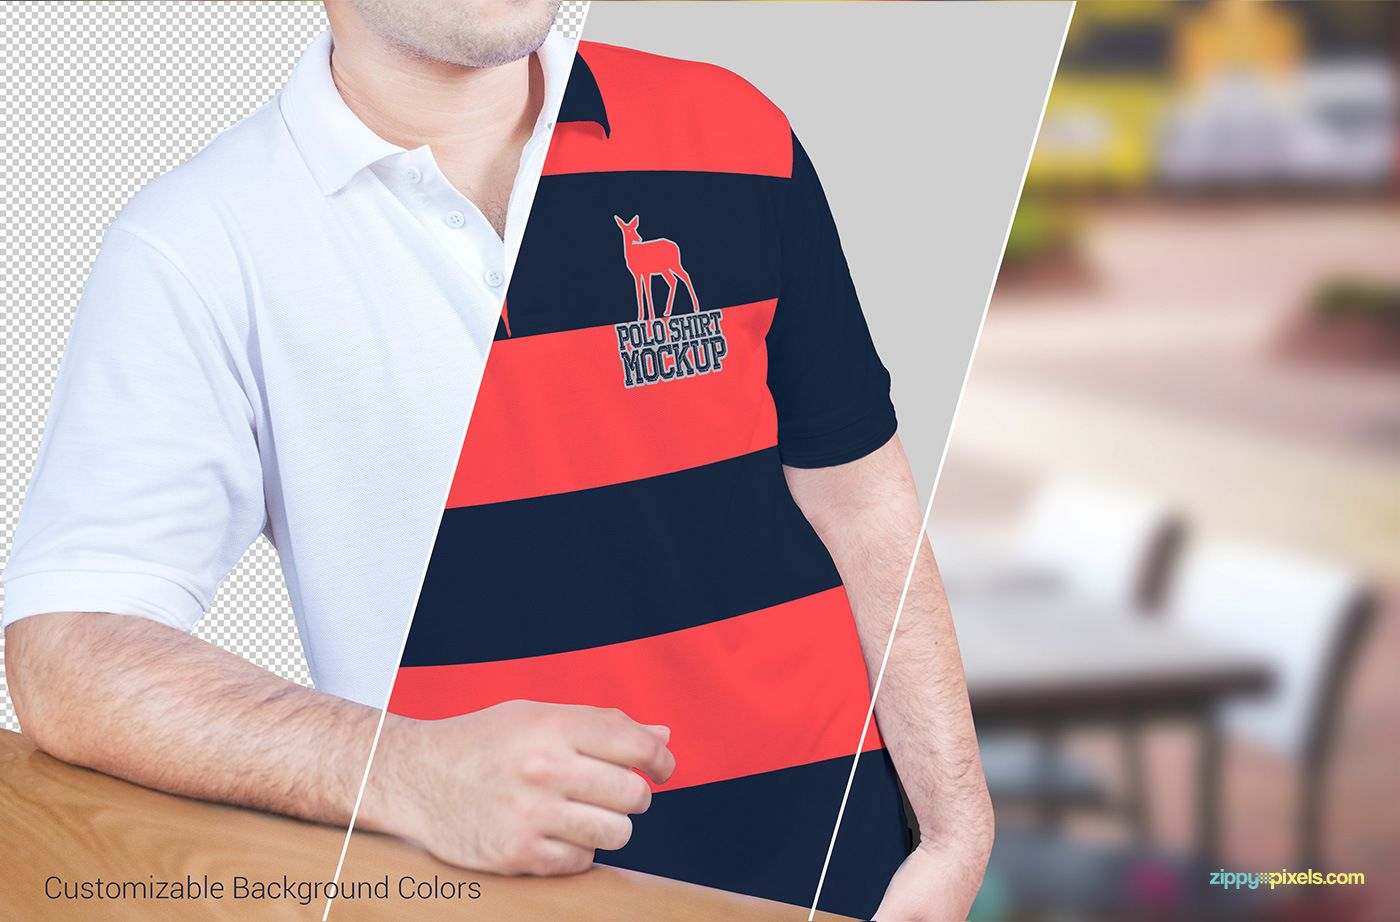 Download Amazing Free Polo Shirt Mockup Fribly Shirt Mockup Clothing Mockup Polo Shirt Design